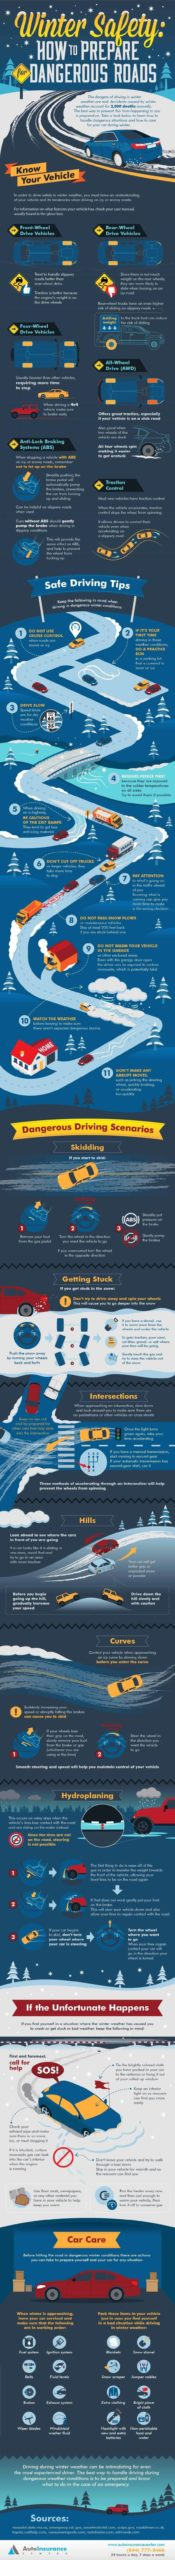 Winter Driving Guide